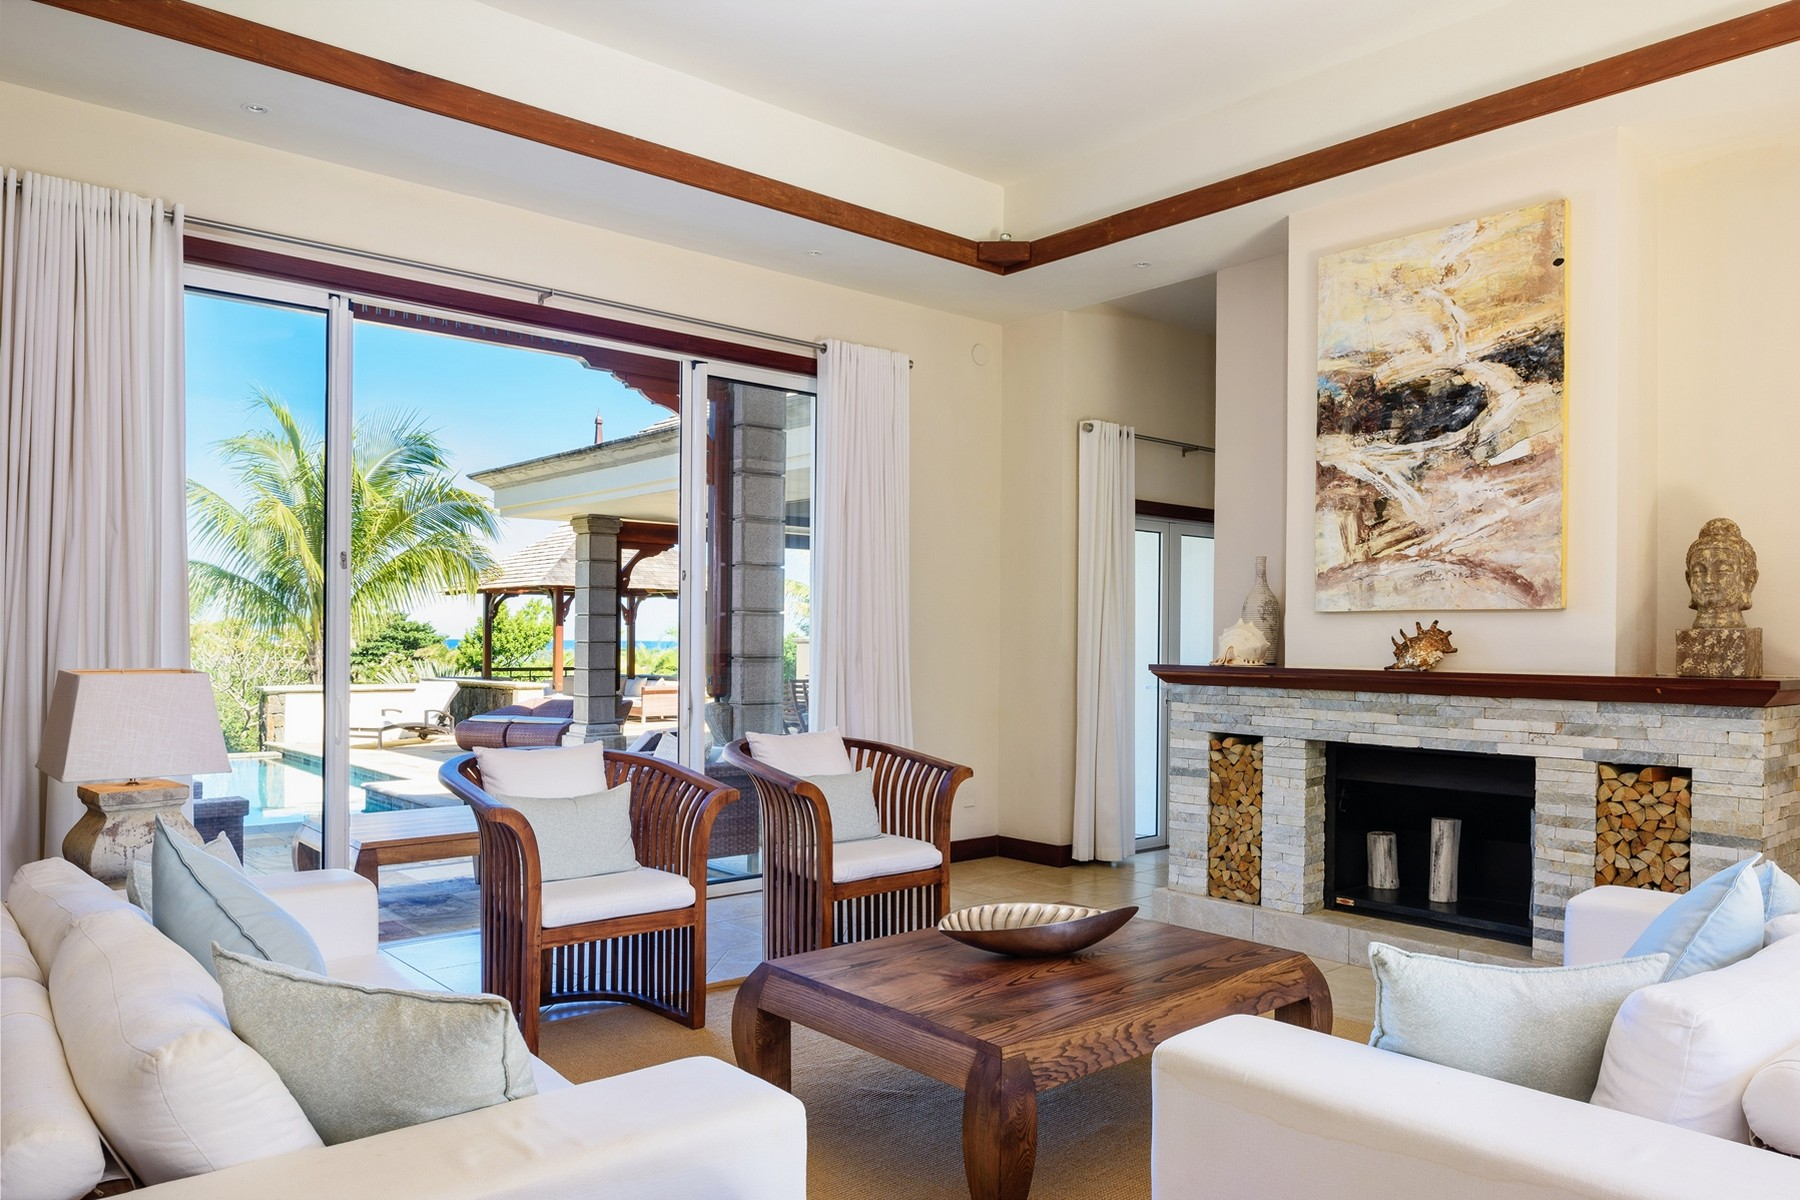 Single Family Home for Sale at 109, Heritage Villas Valriche Bel Ombre, Savanne, Mauritius